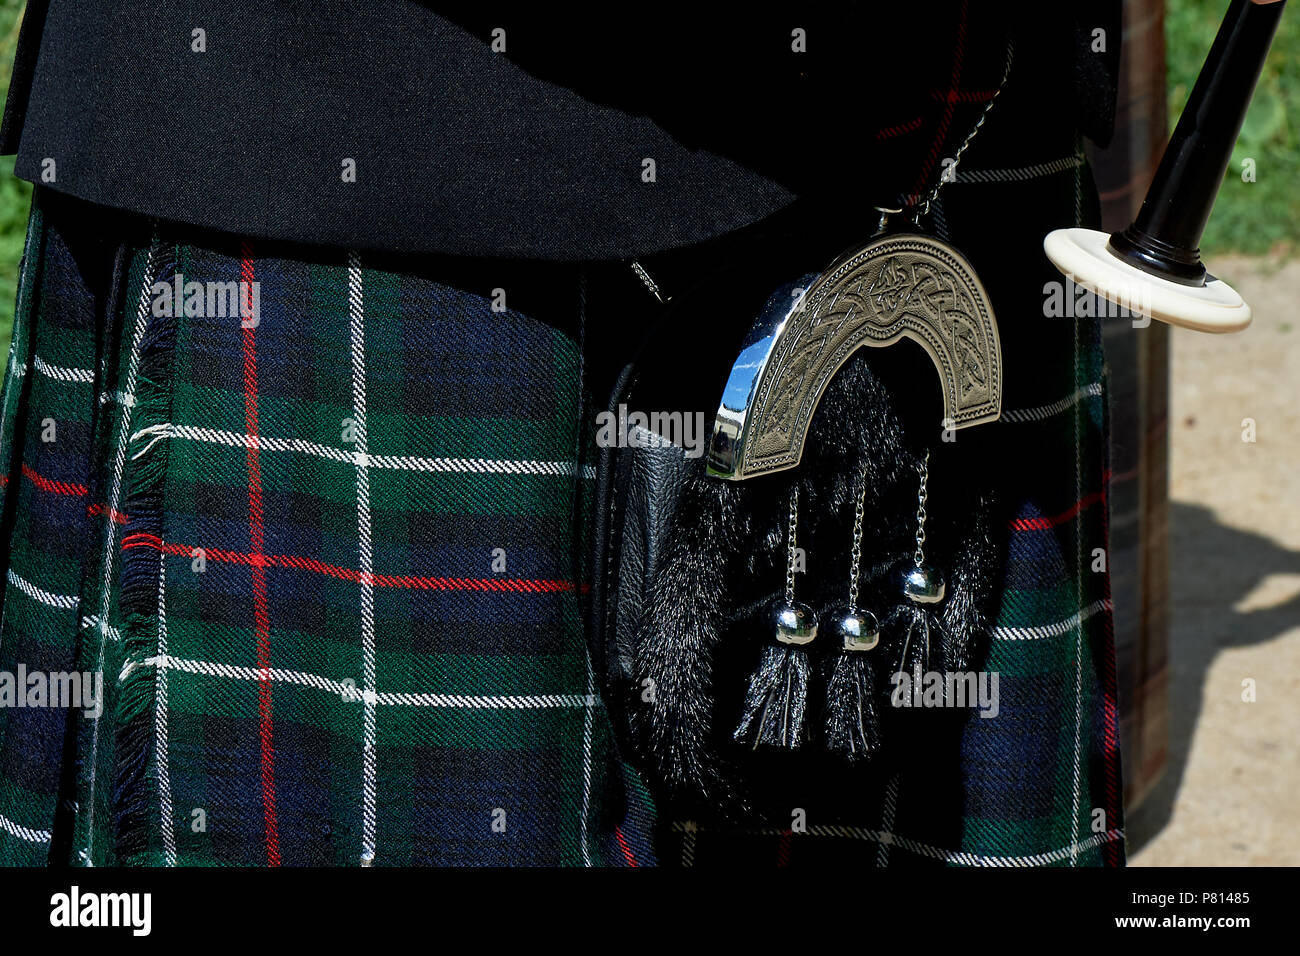 The details of the skirt of the kilt and the little bags with tassels.Closely - Stock Image